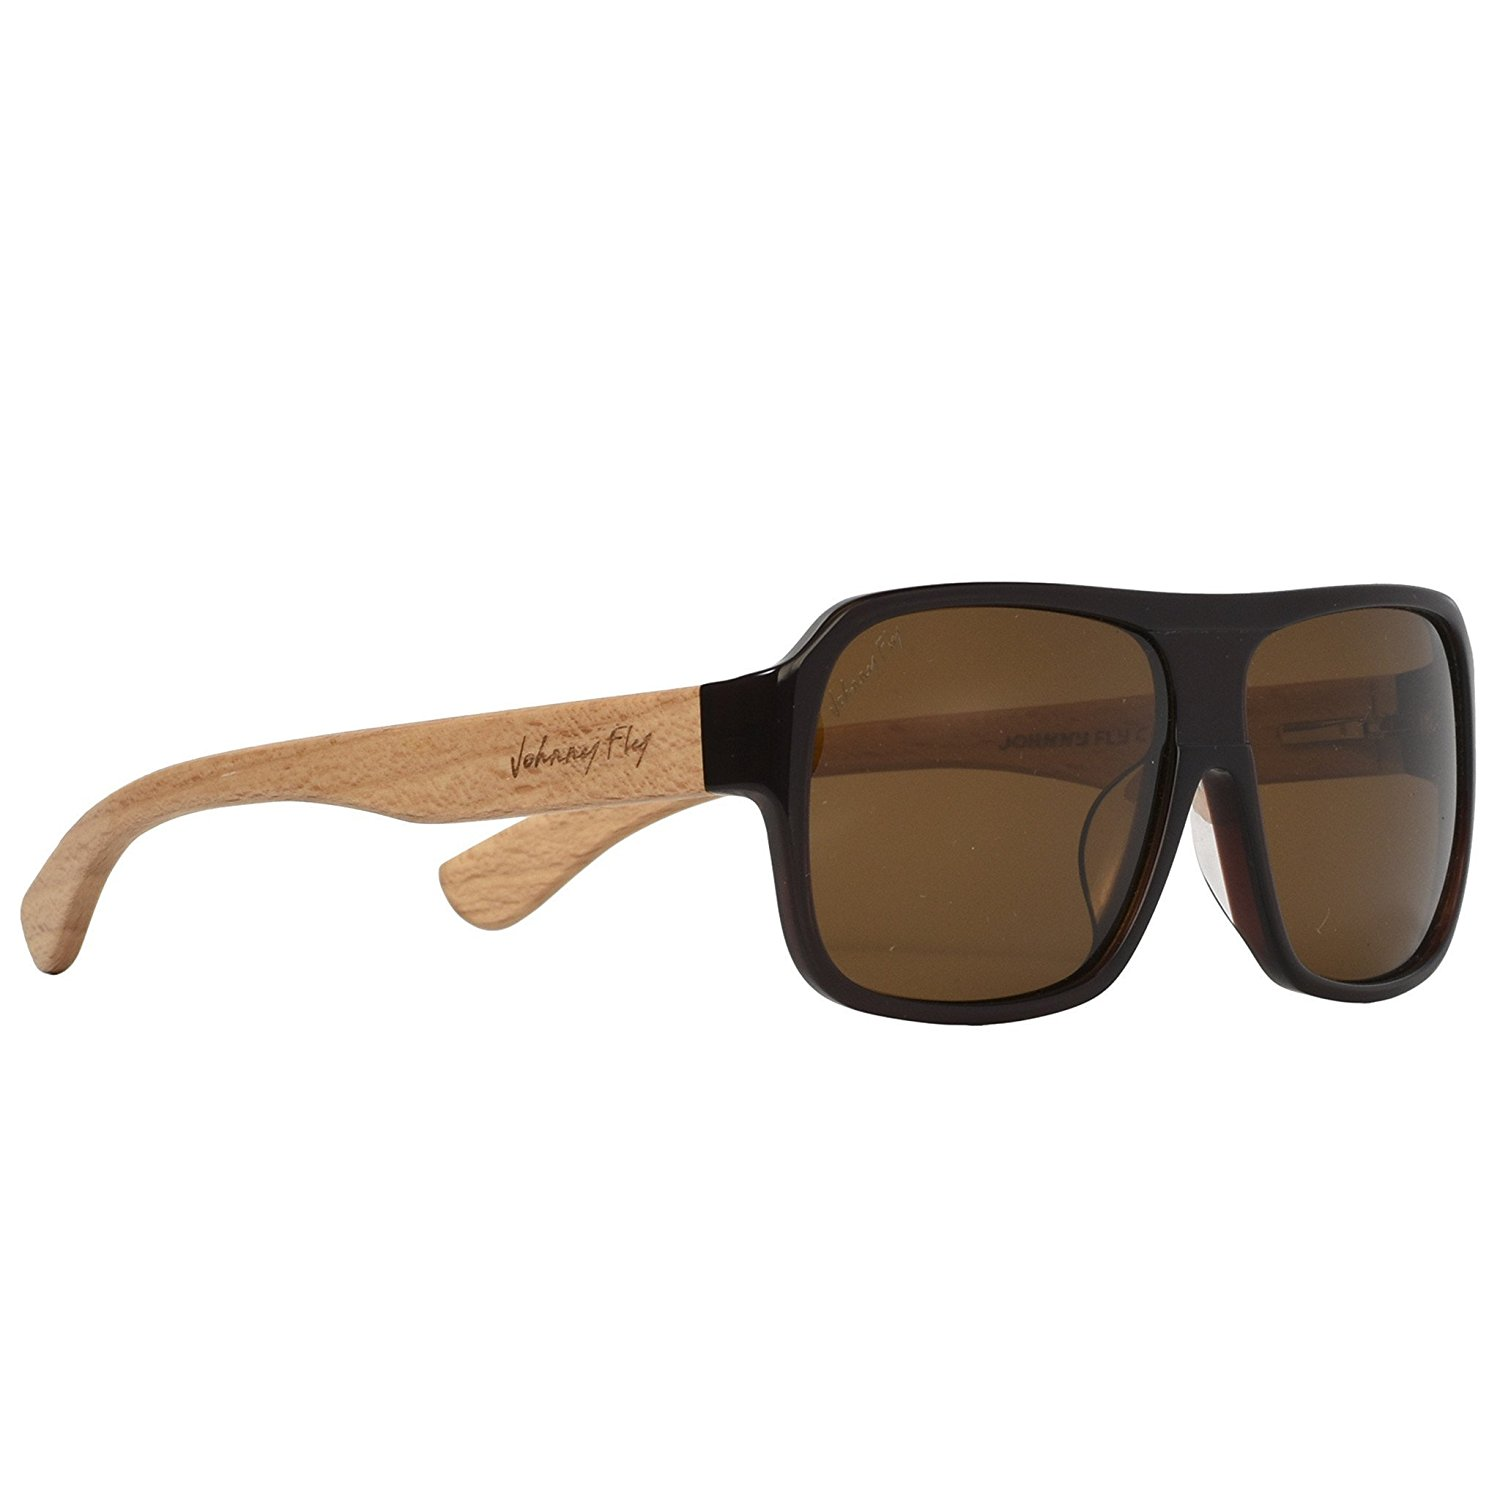 3dfd28ab2b5f Cheap Bomber Sunglasses, find Bomber Sunglasses deals on line at ...